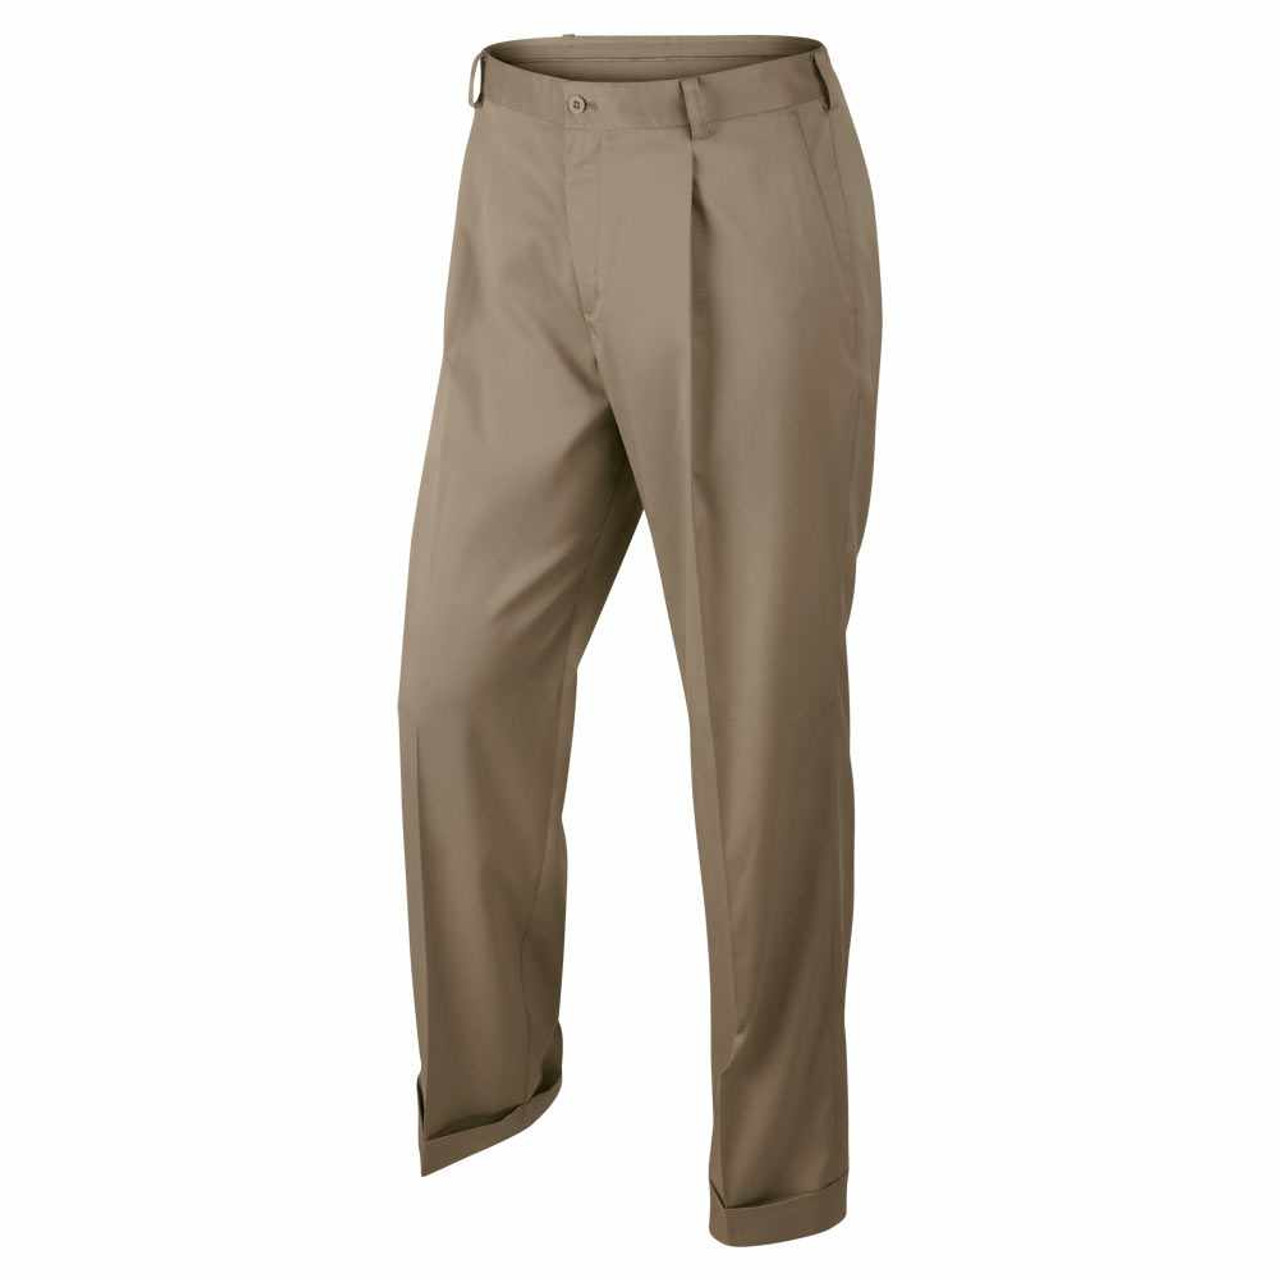 nike 5 pocket golf pants pure platinum